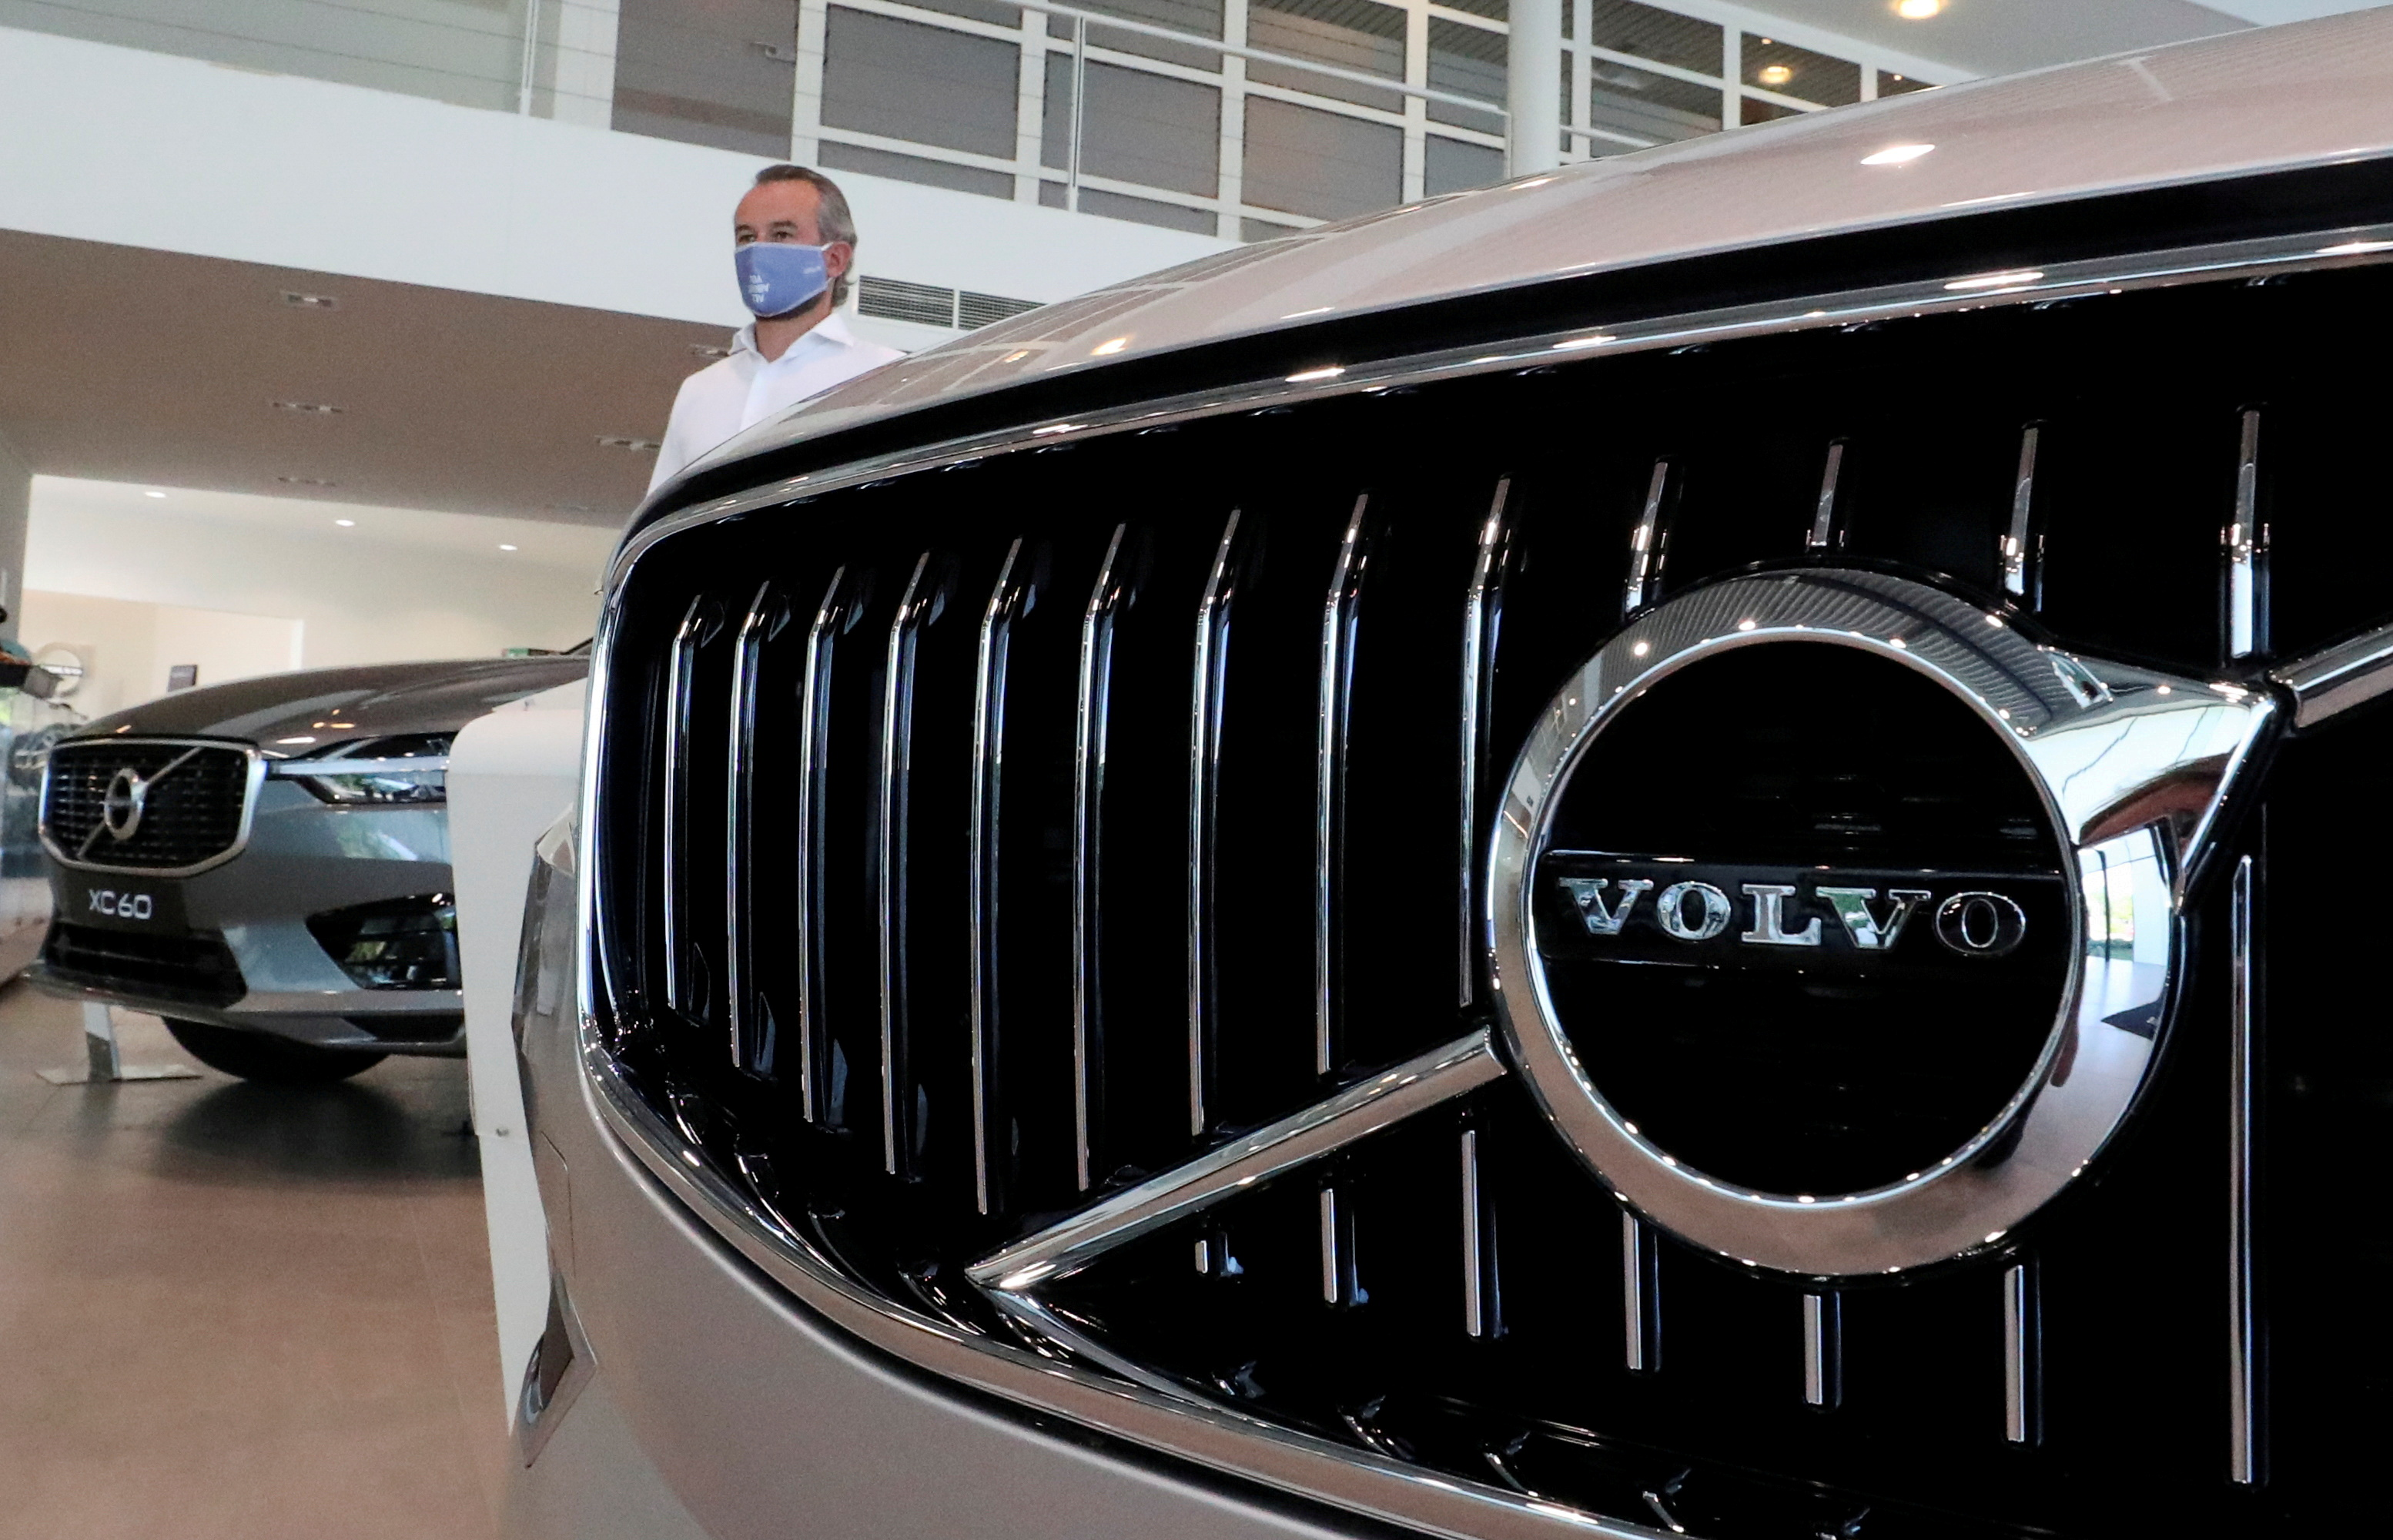 An employee at a Volvo car dealer, wearing a protective mask is seen in a showroom, in Brussels, Belgium, May 28, 2020. REUTERS/Yves Herman/File Photo